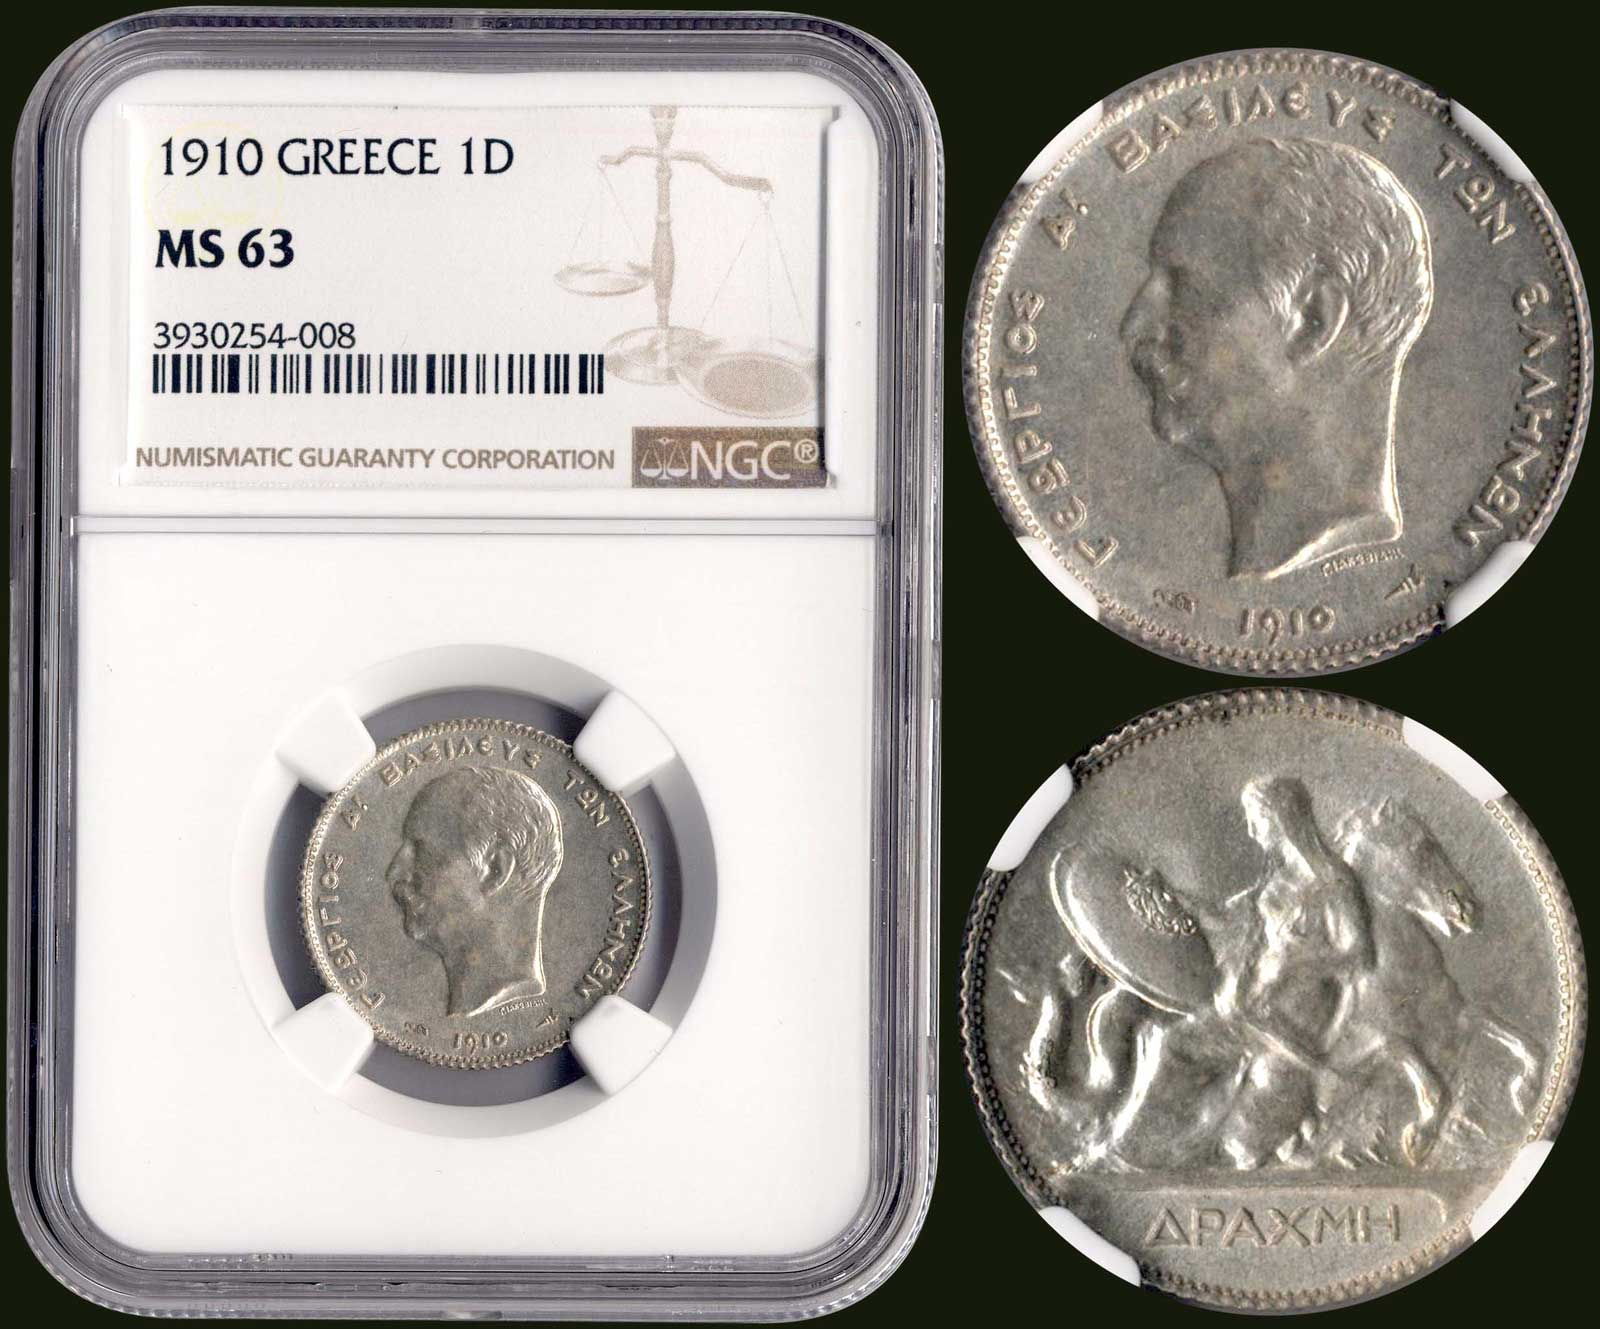 Lot 9102 - GREECE-  COINS & TOKENS king george i -  A. Karamitsos Public & LIVE Bid Auction 610 Coins, Medals & Banknotes